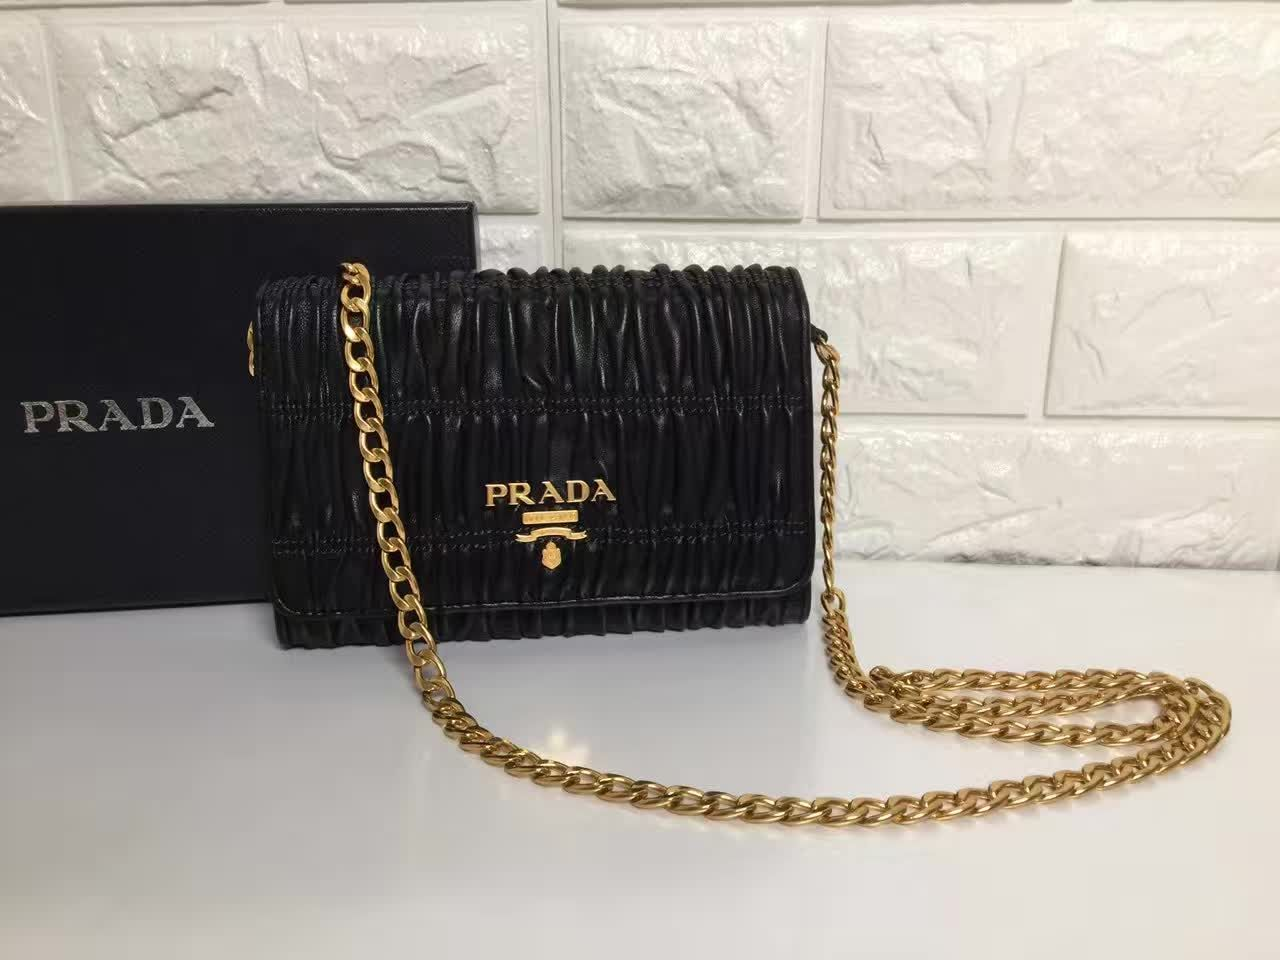 ... prada handbags for cheap, prada bag price list, prada wallet brands,  prada handmade leather wallets, prada briefcase sale, prada official website  for ...